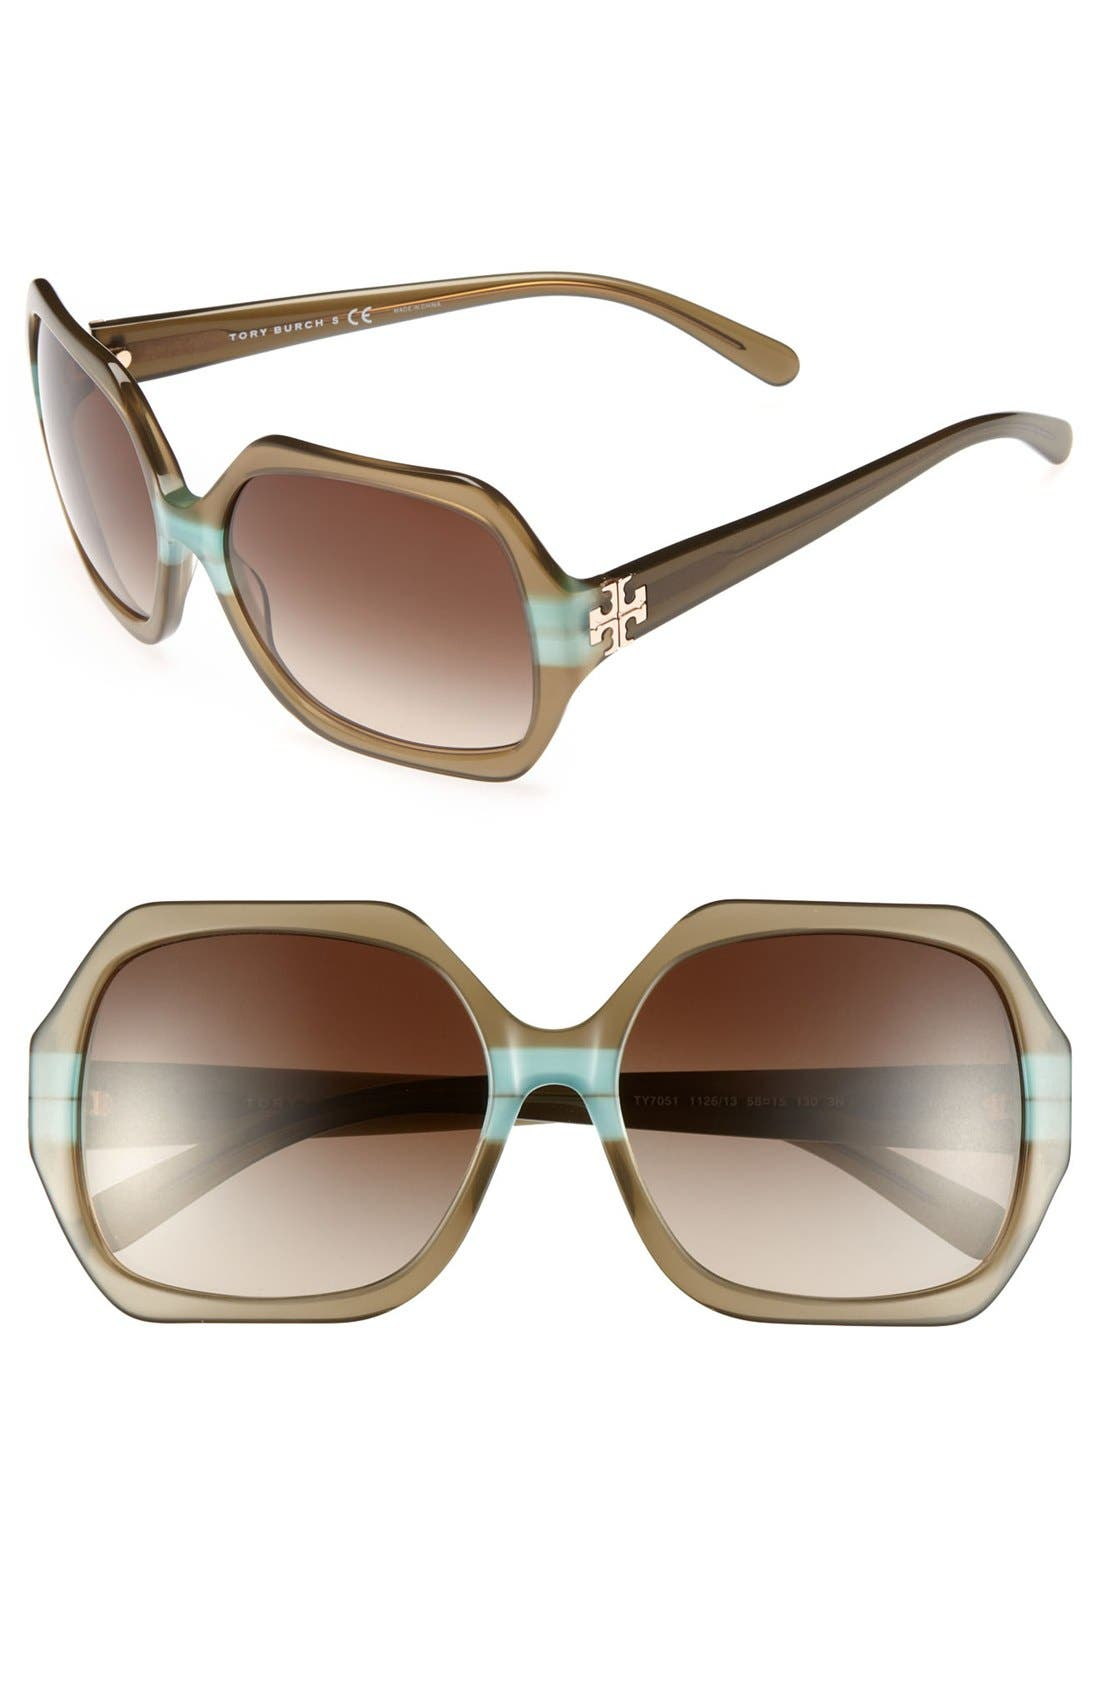 Main Image - Tory Burch 58mm Sunglasses (Online Only)